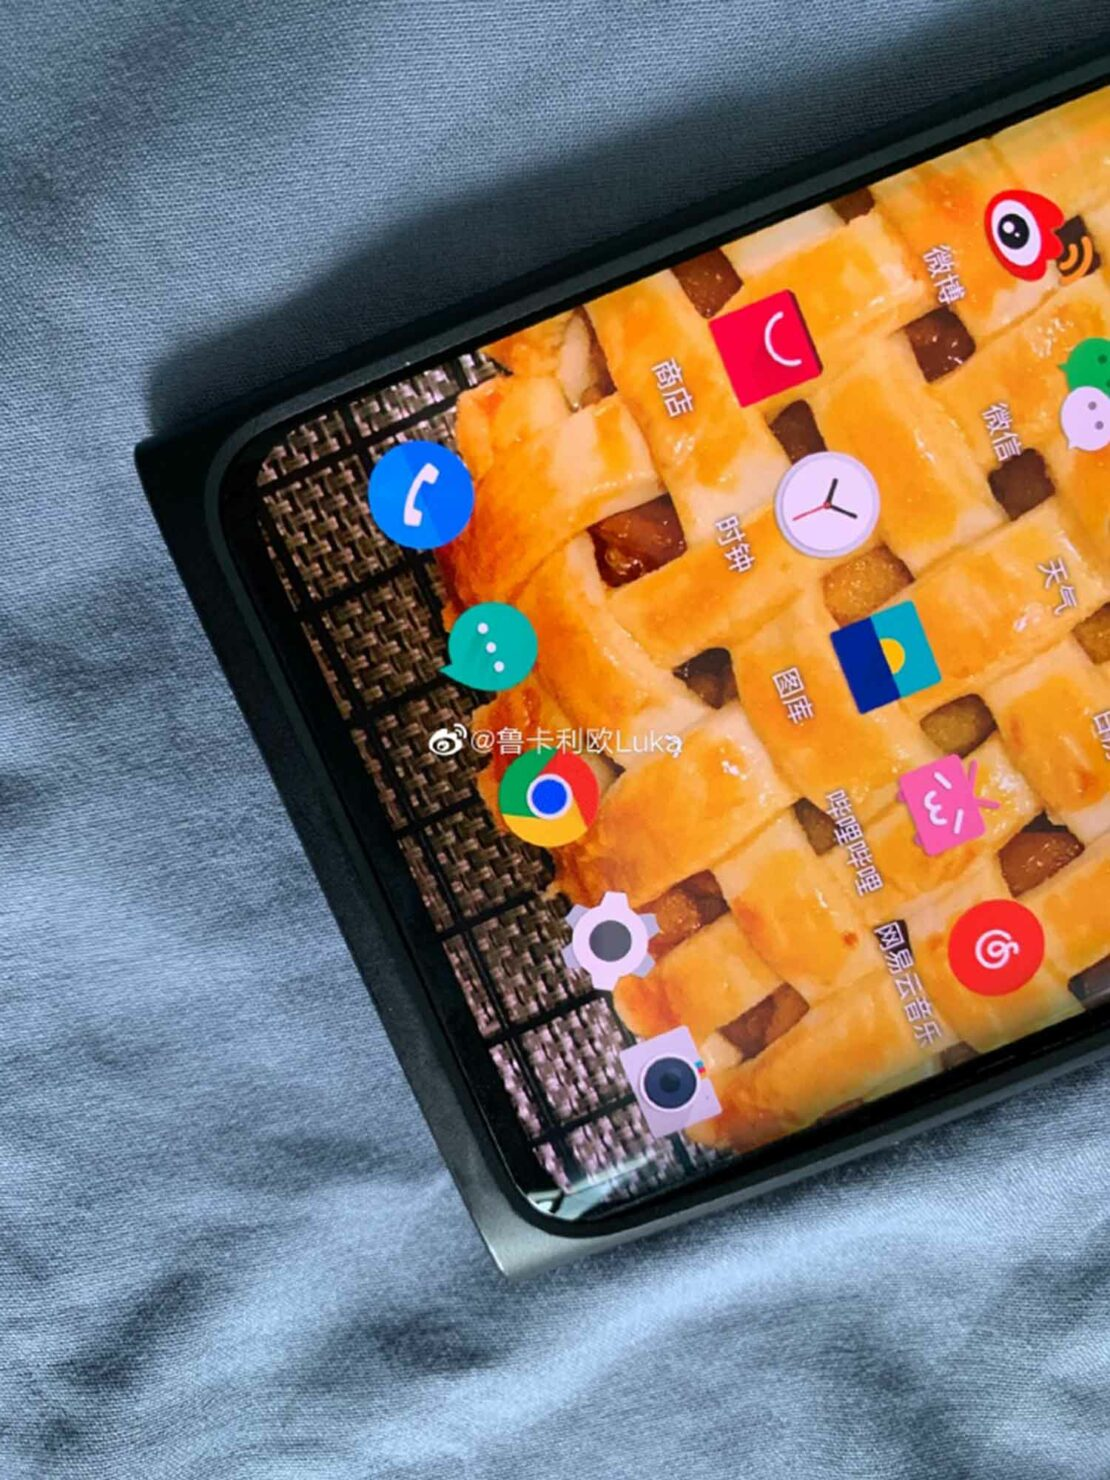 OnePlus 7T Pro allegedly shown in three images